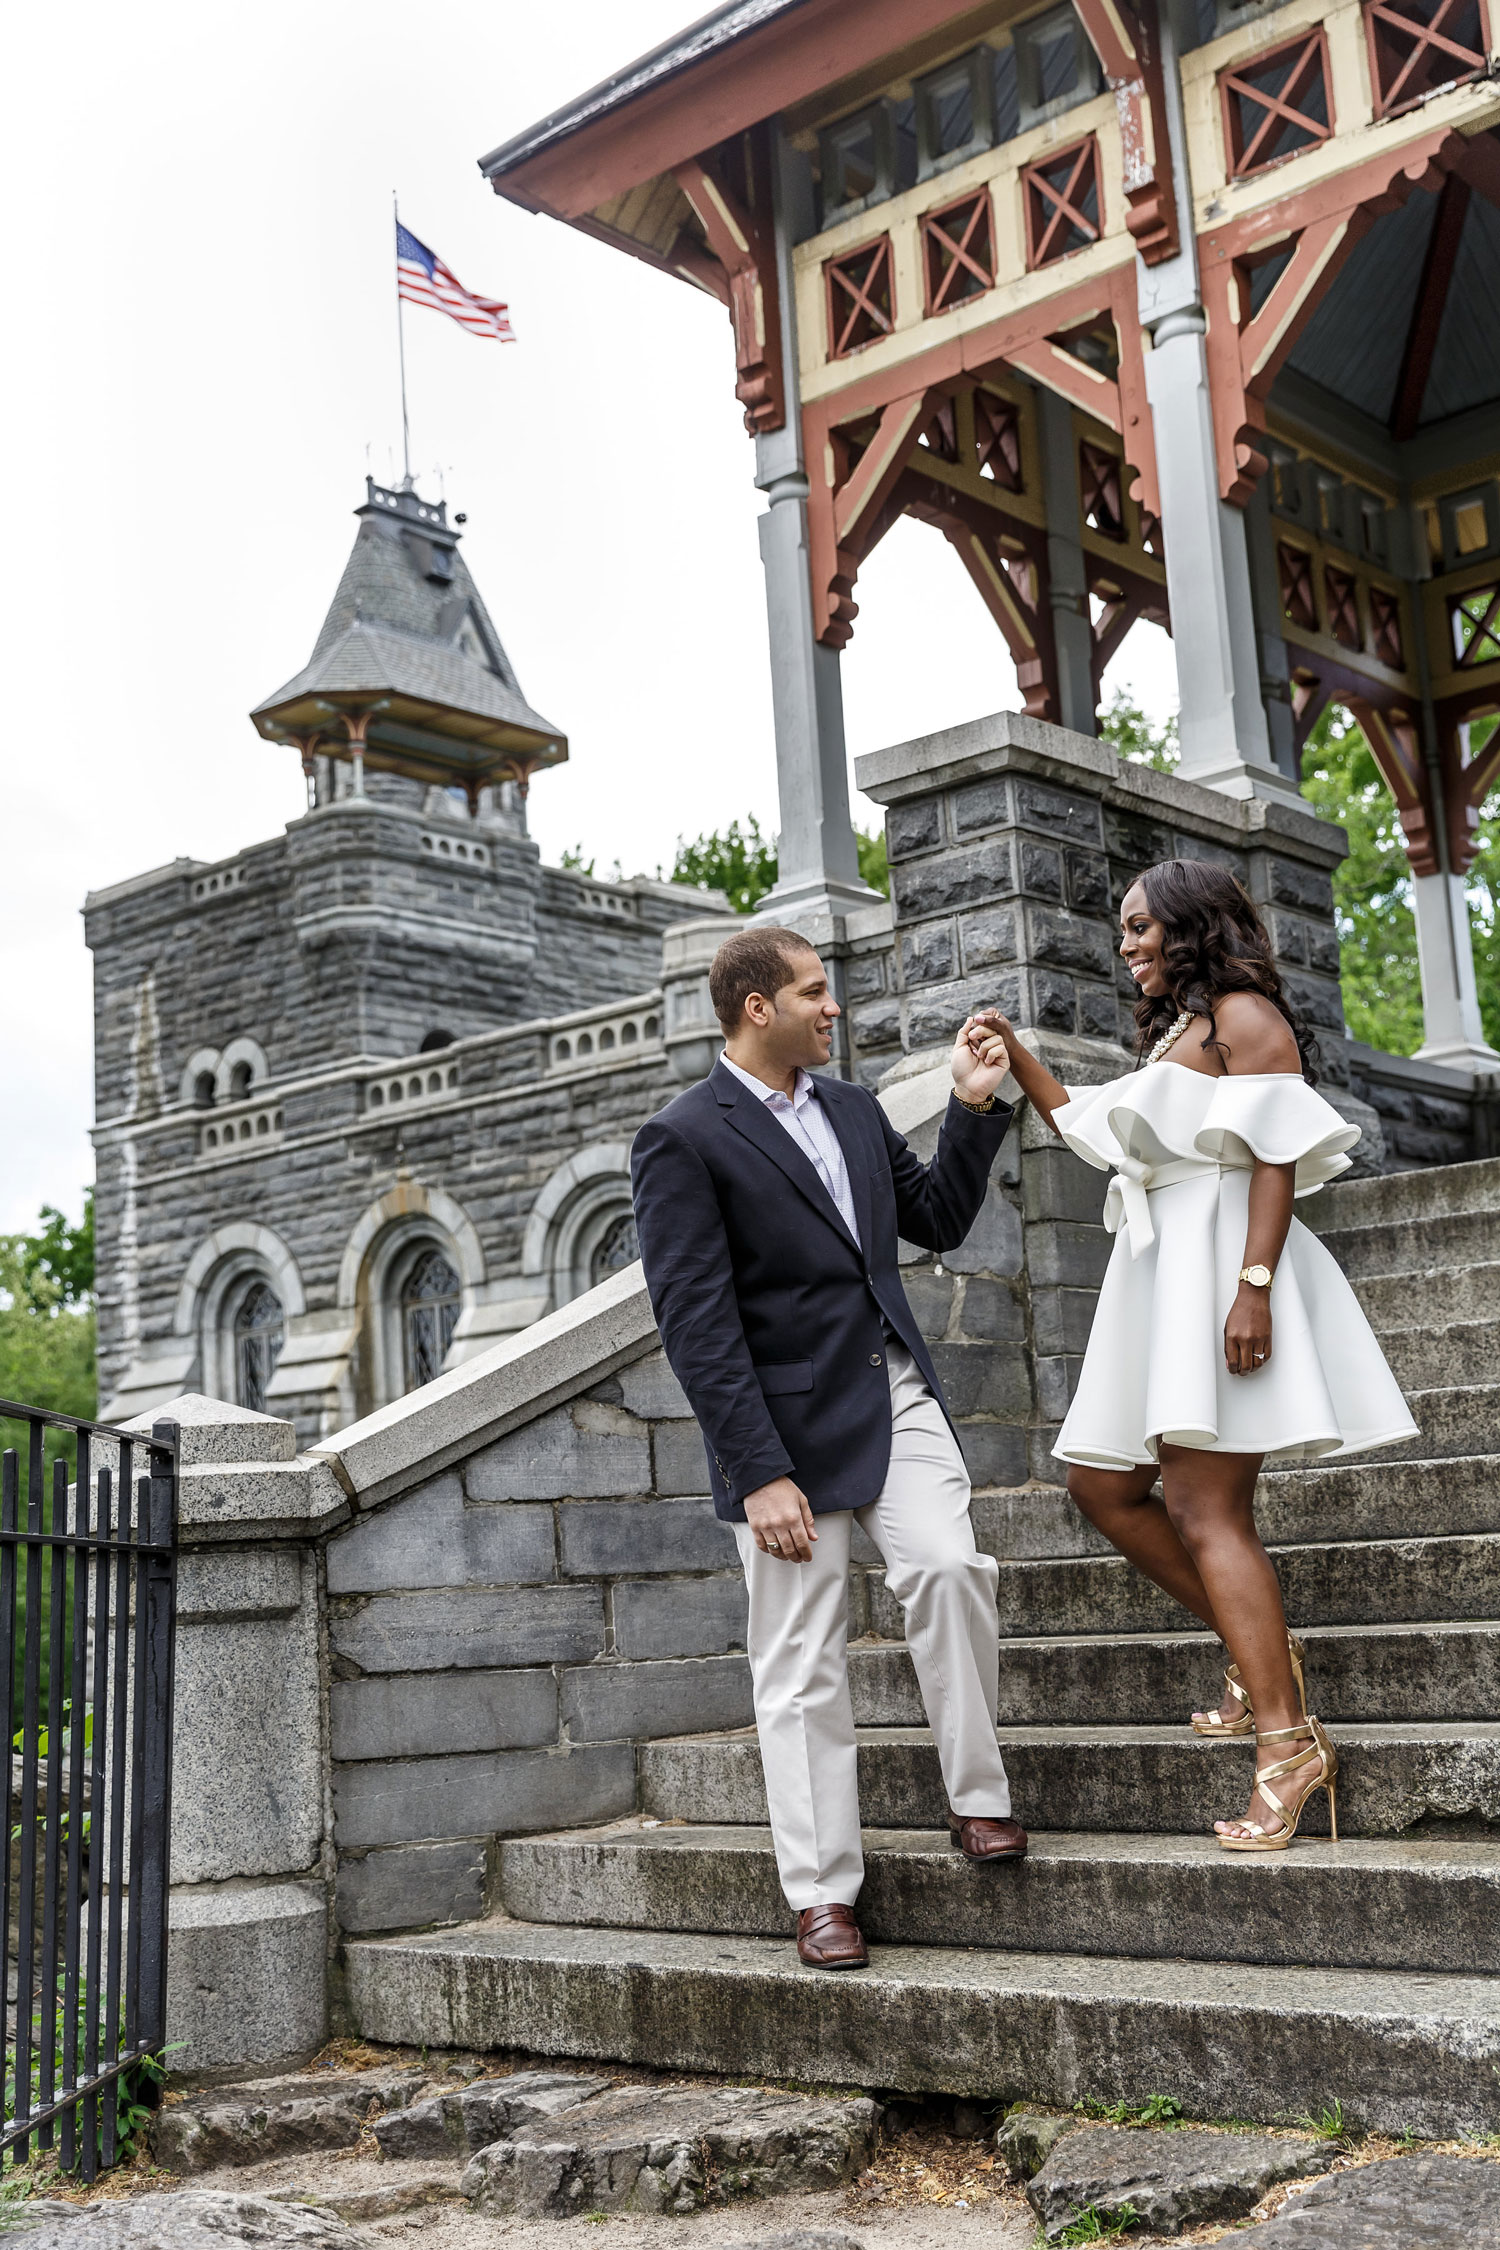 New York City central park engagement session photo by Amy Anaiz walking down stairs